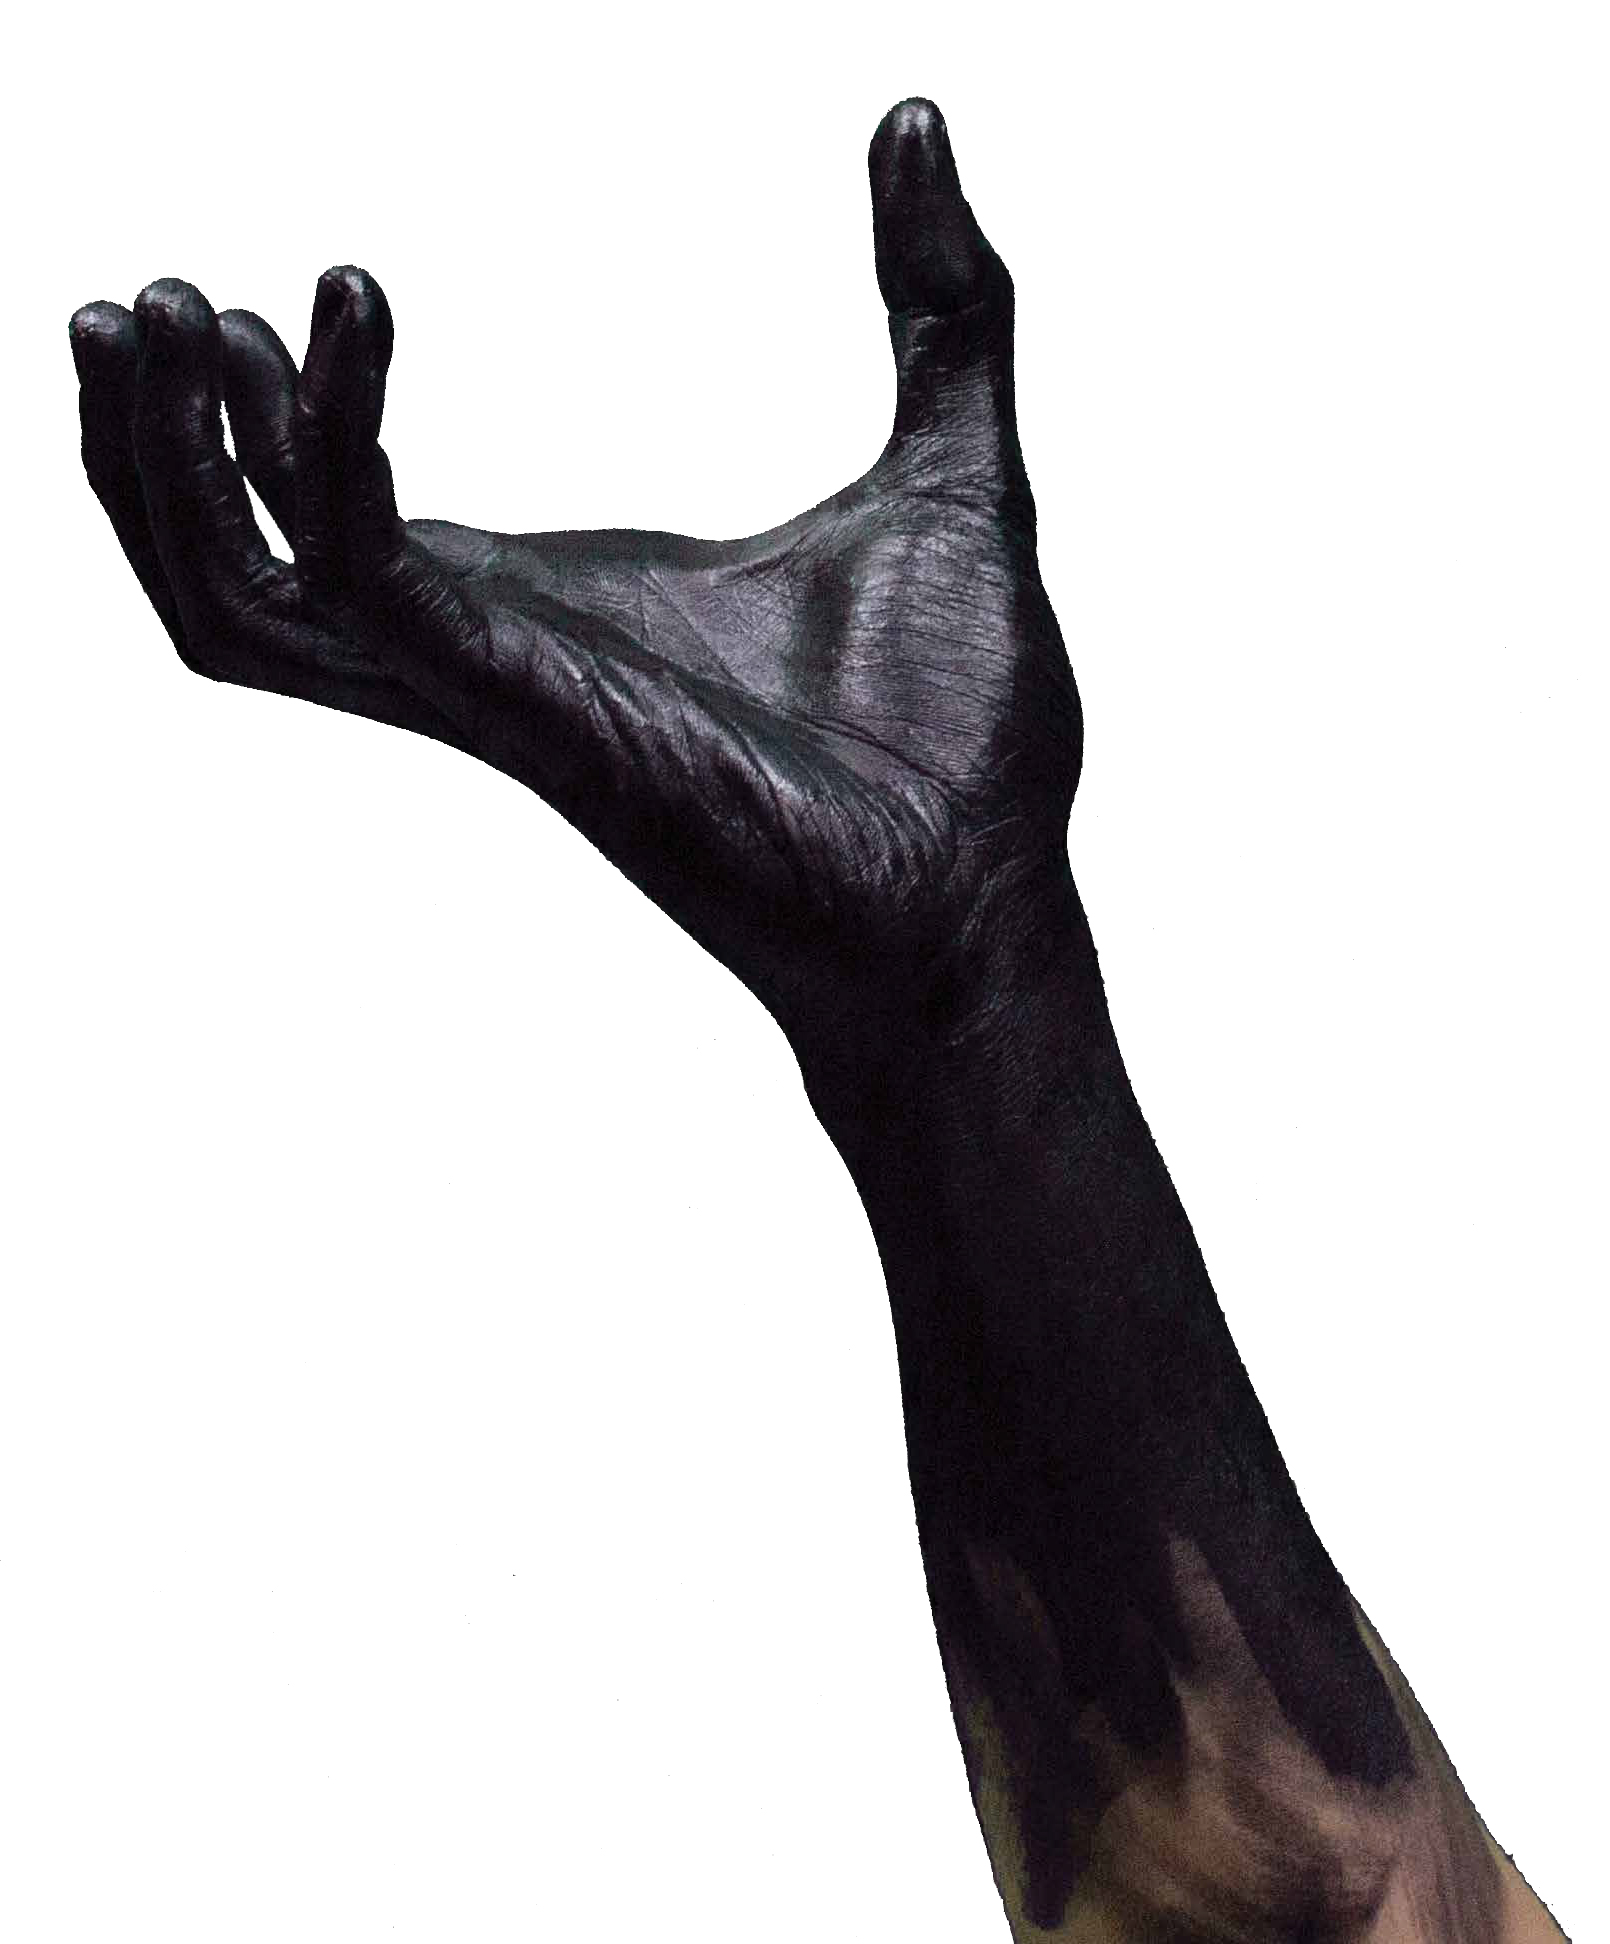 photo of arm reaching upwards covered in black ink